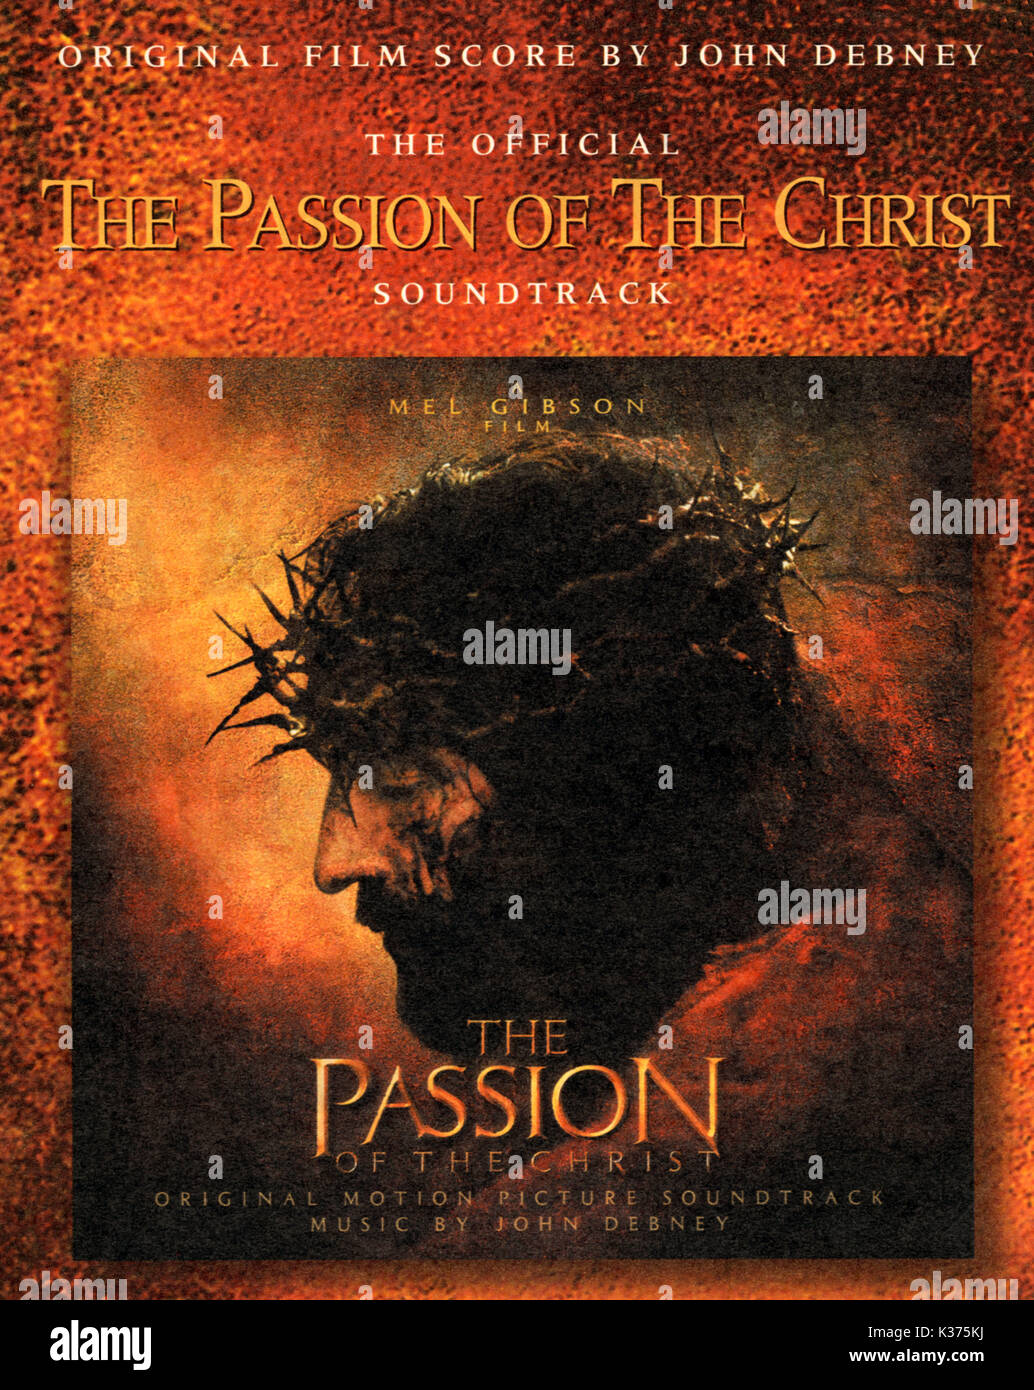 Passion Of The Christ Poster Stock Photos & Passion Of The Christ